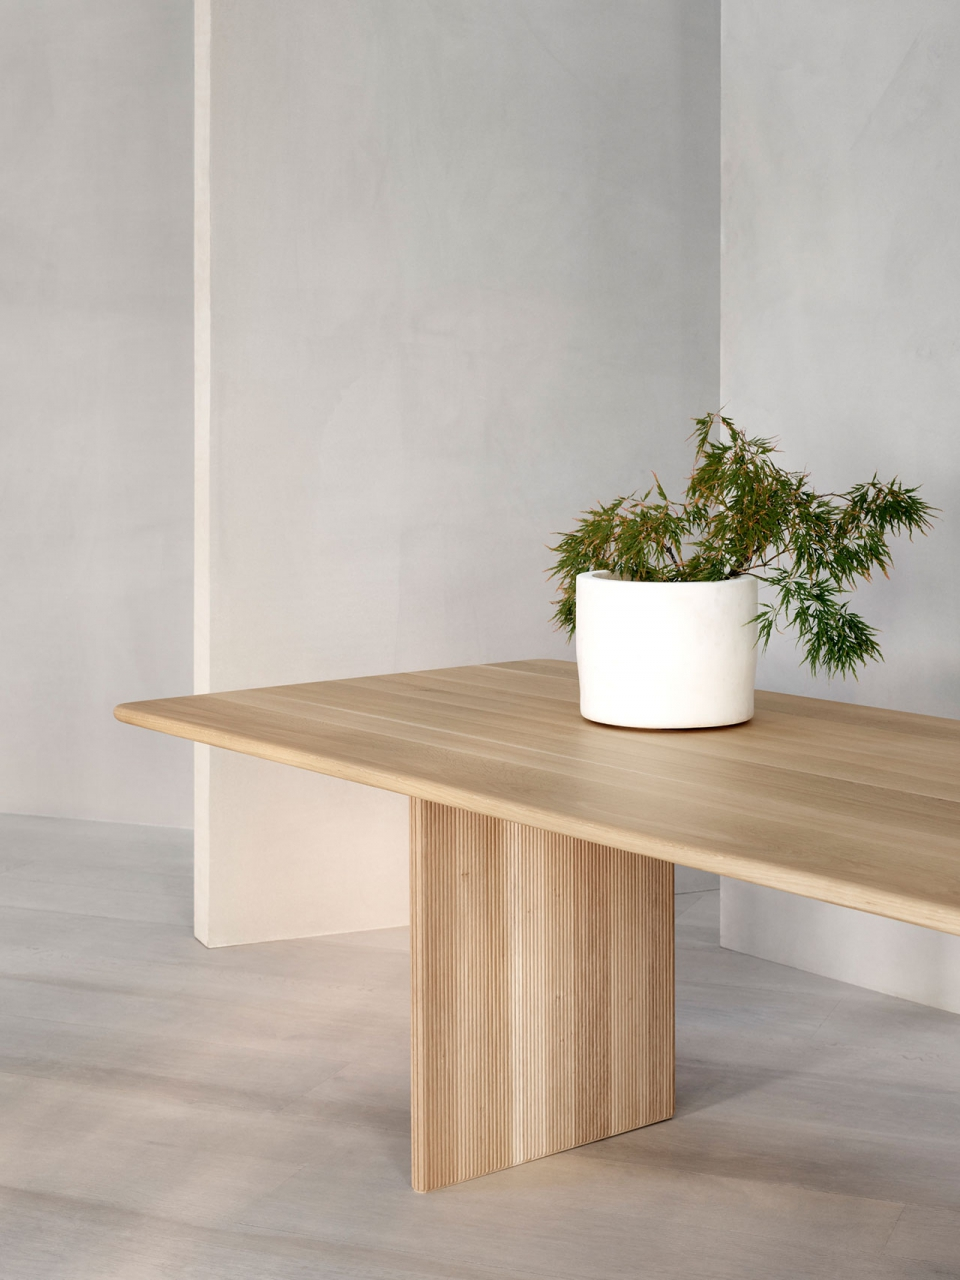 Cabin square table